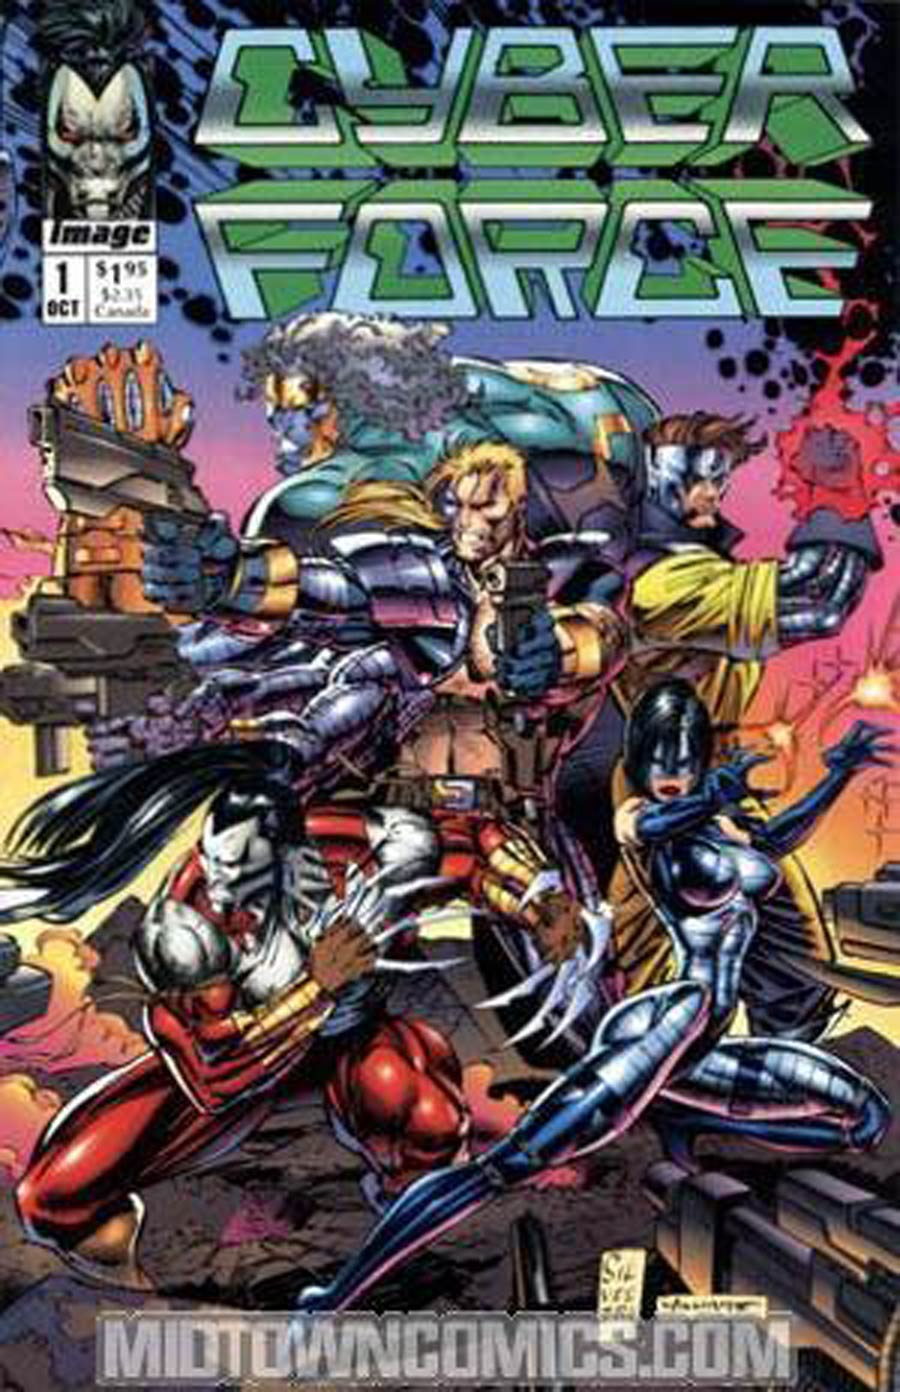 Cyberforce #1 Cover B Without Coupon